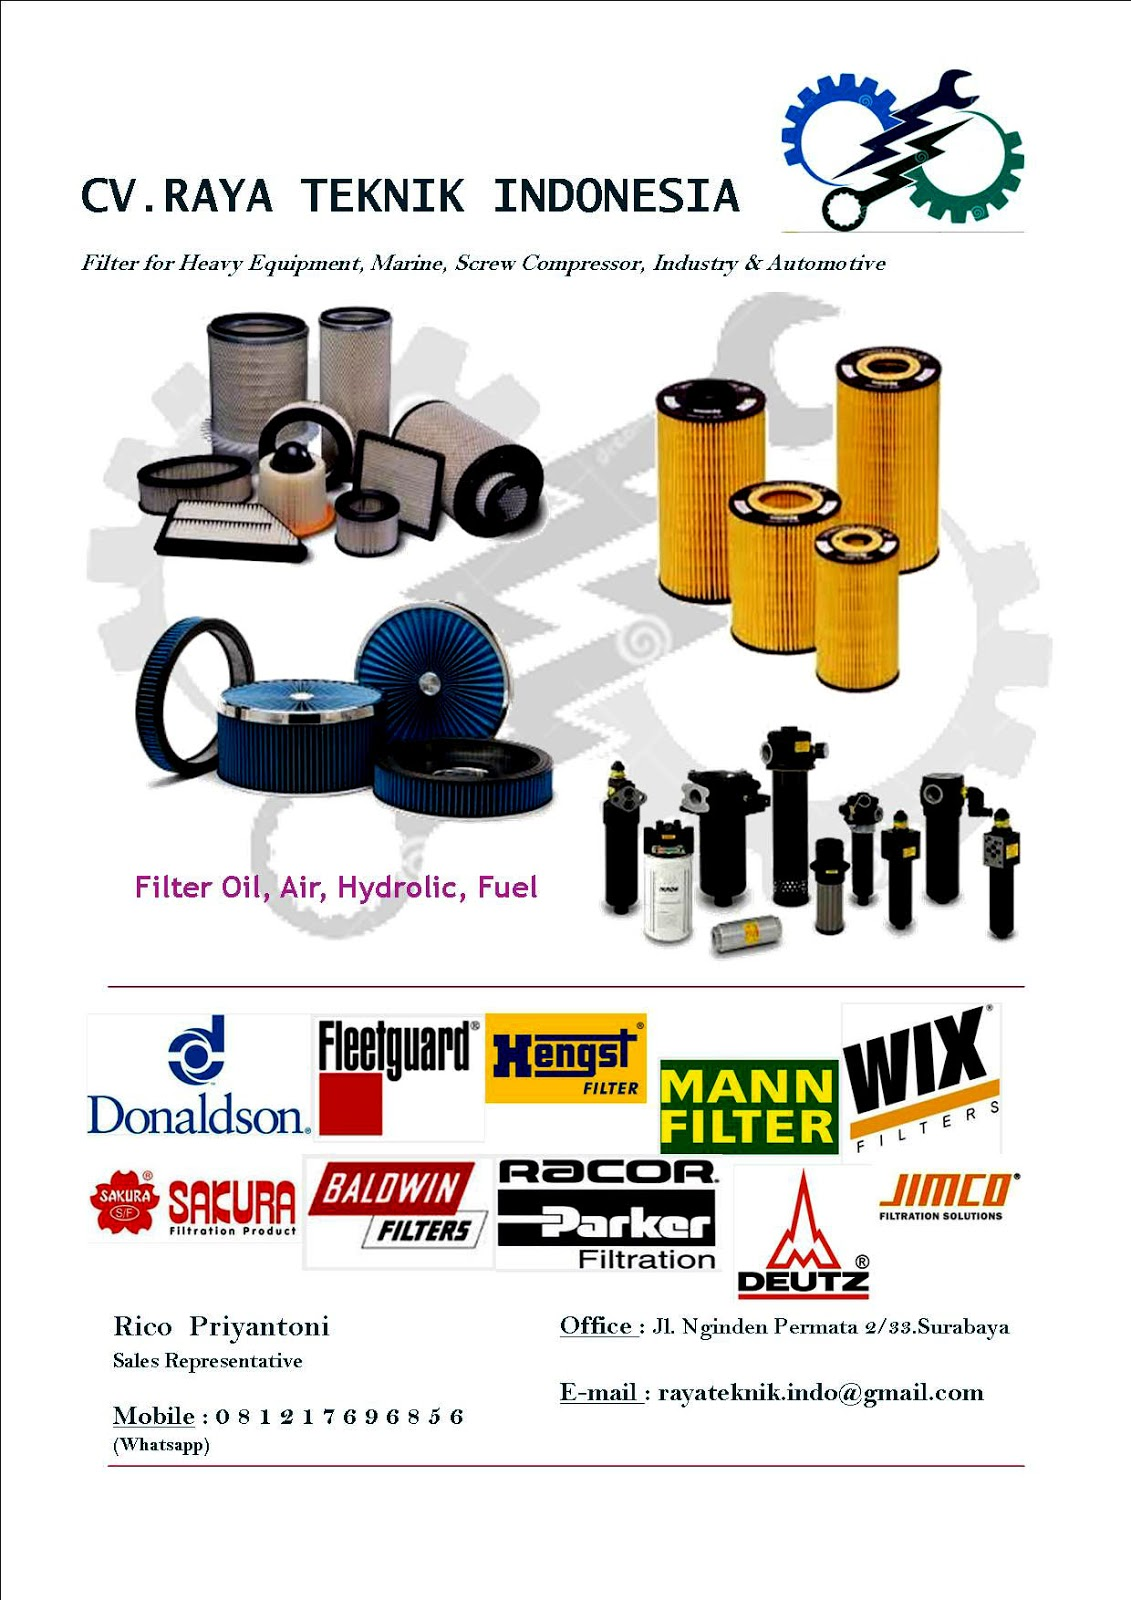 Distributor Filter Airoilfuelhydrolic Surabaya Griffin Fuel Filters